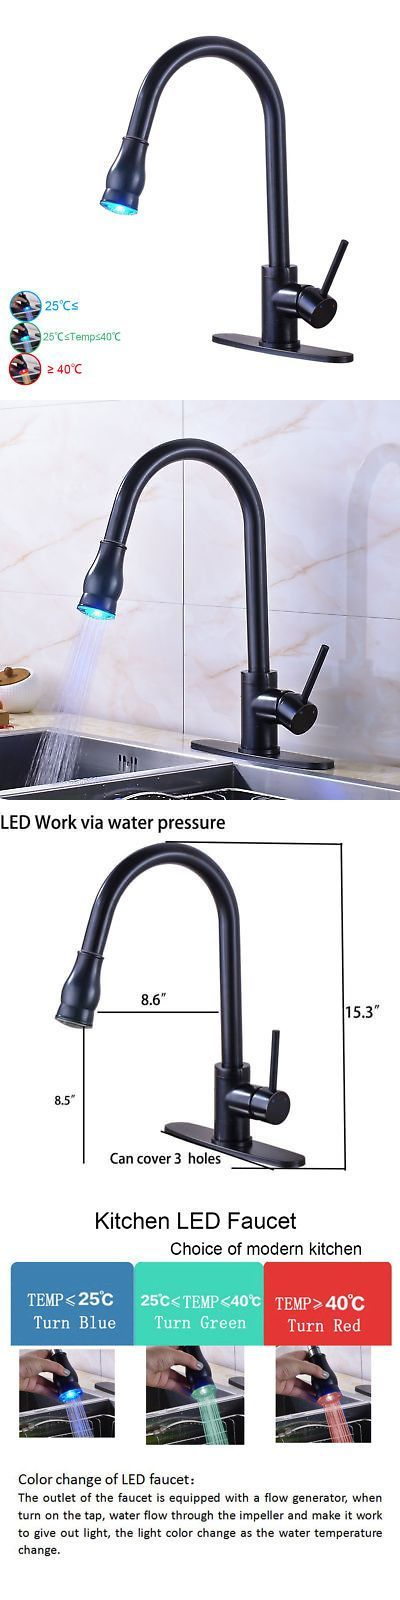 Faucets 42024 Oil Rubbed Bronze Kitchen Faucet Pull Out Sprayer Sink Single Hole Mixer Tap Buy It Now Only 54 On Ebay Home Garden Gadgetshaul Kuchenarmatur Kuchengerate Wasserhahn